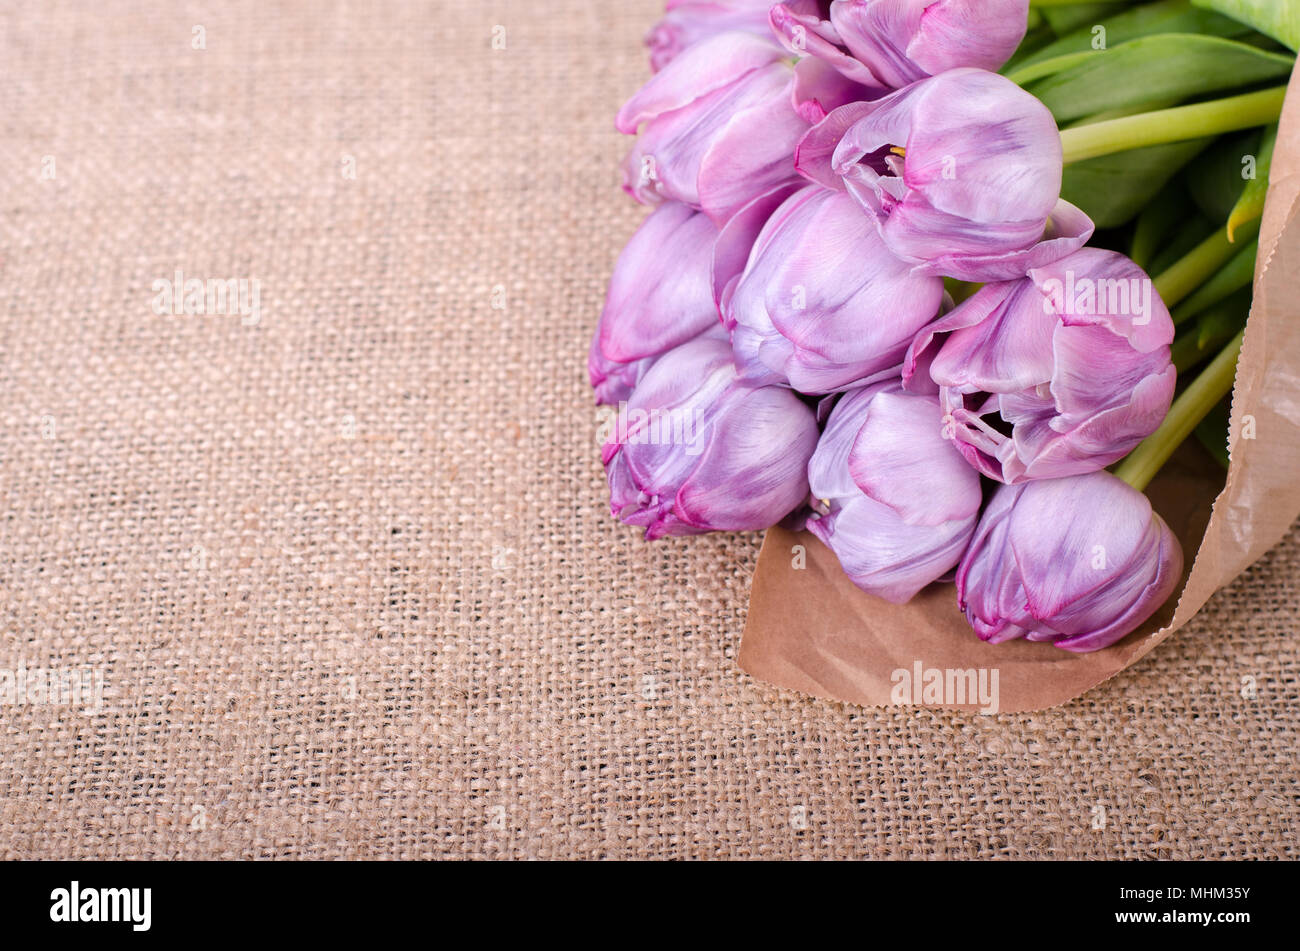 violet tulips on a canvas background for mothers day wedding